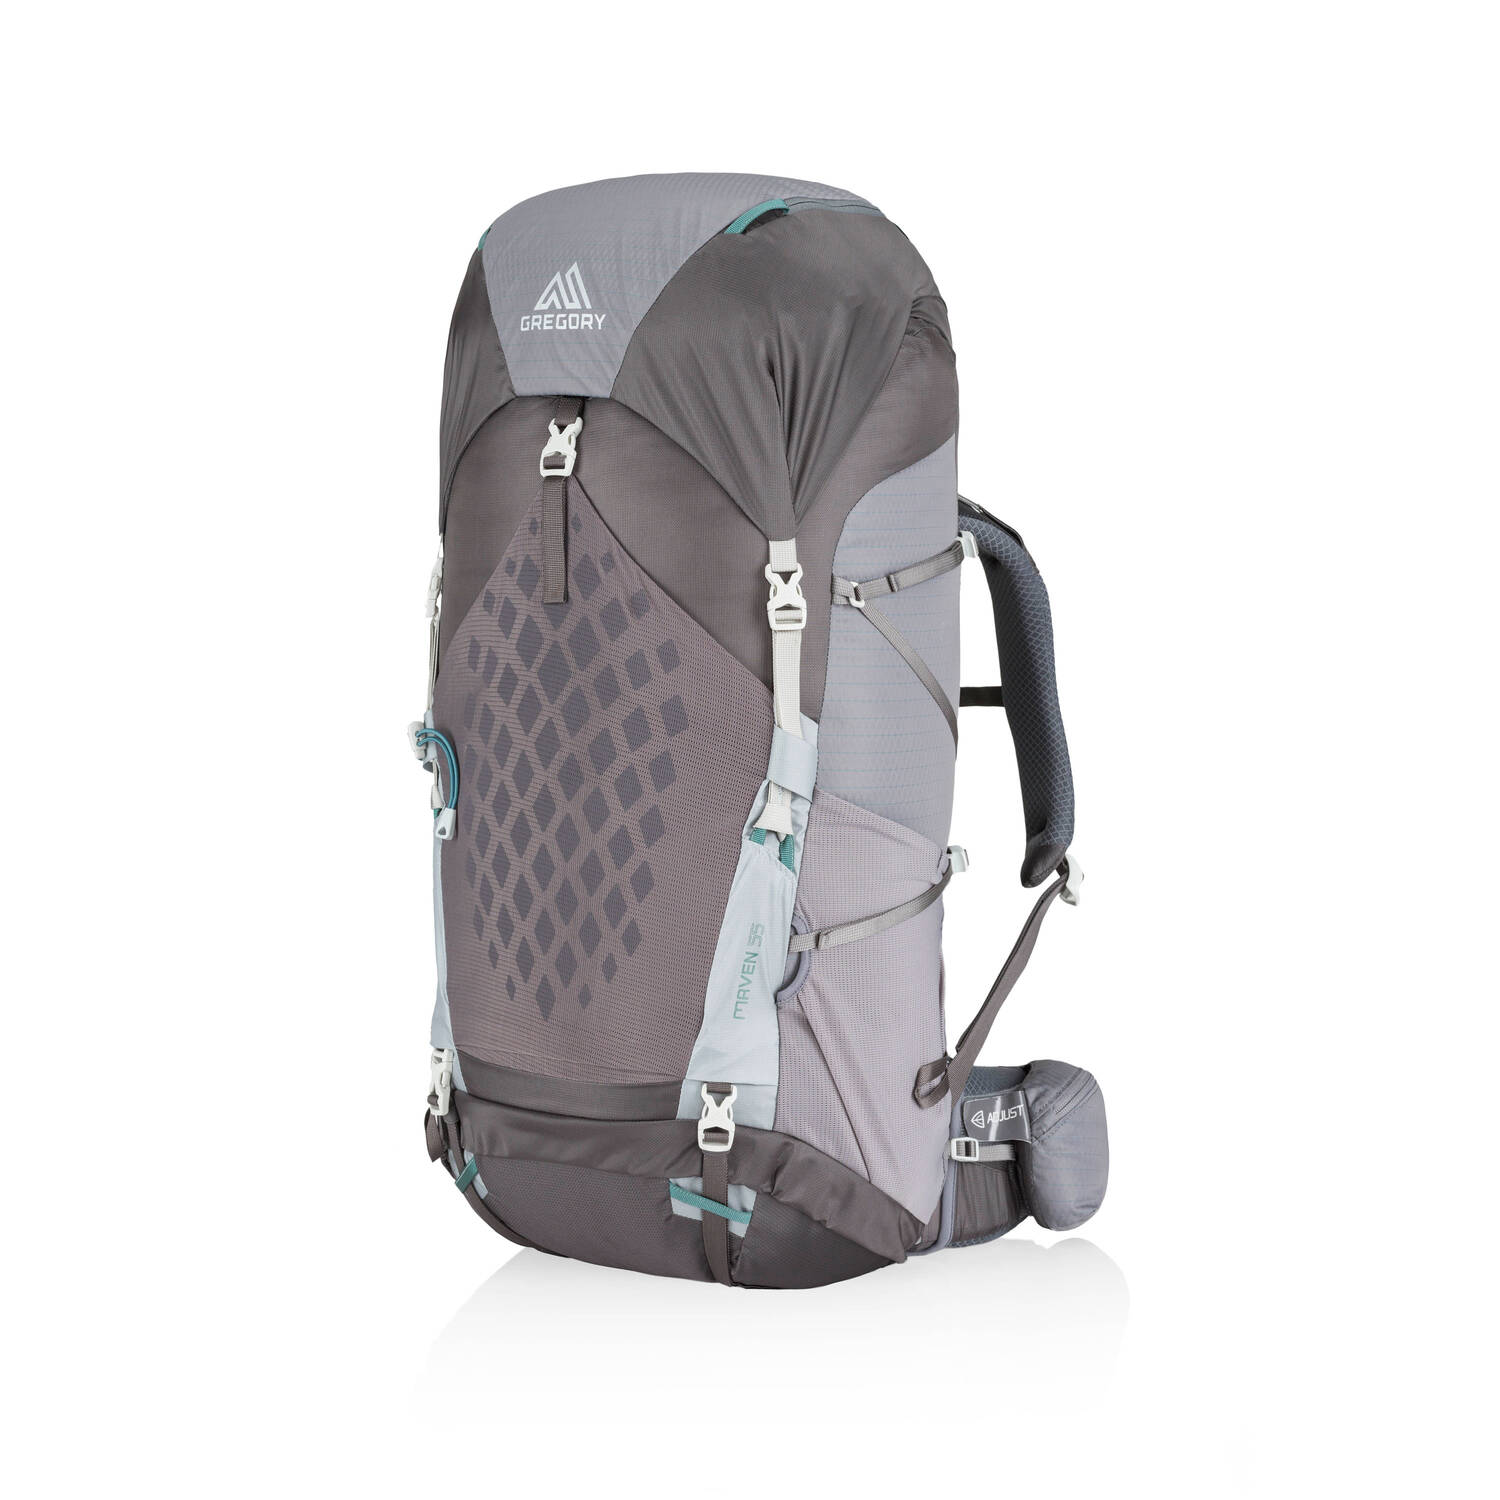 Fitted backpack's photo